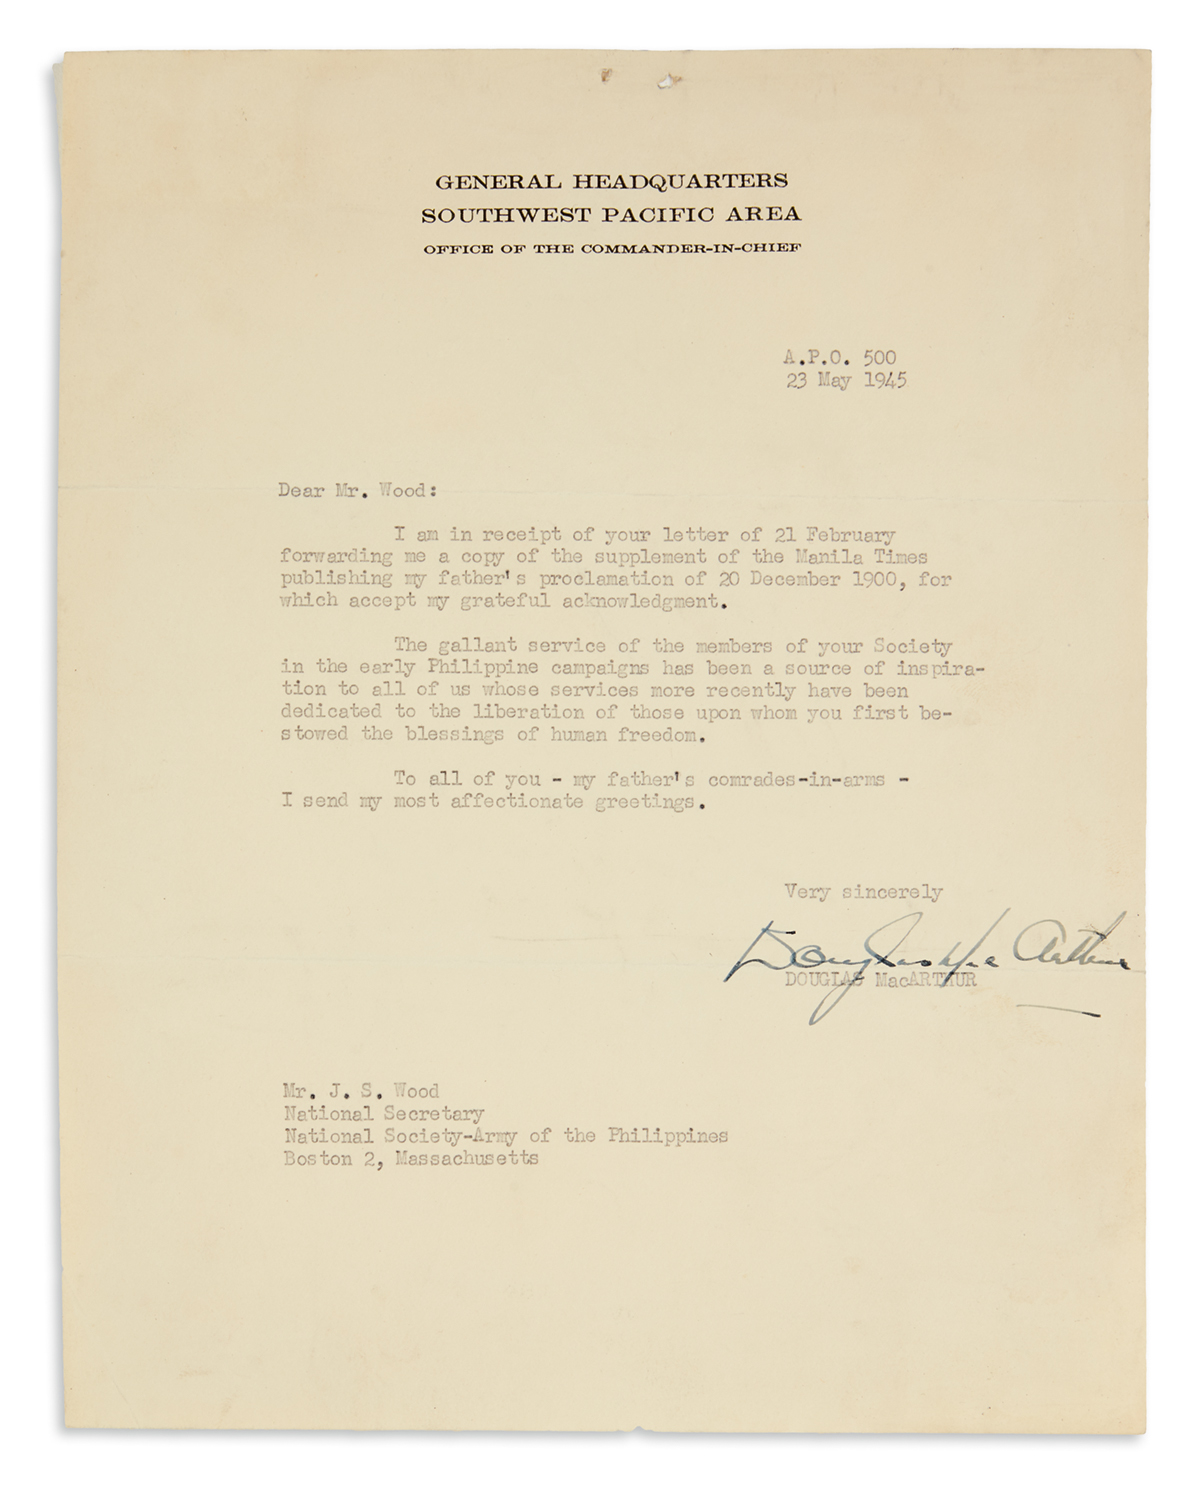 MACARTHUR-DOUGLAS-Typed-Letter-Signed-to-National-Secretary-of-the-National-Society-Army-of-the-Philippines-JS-Wood